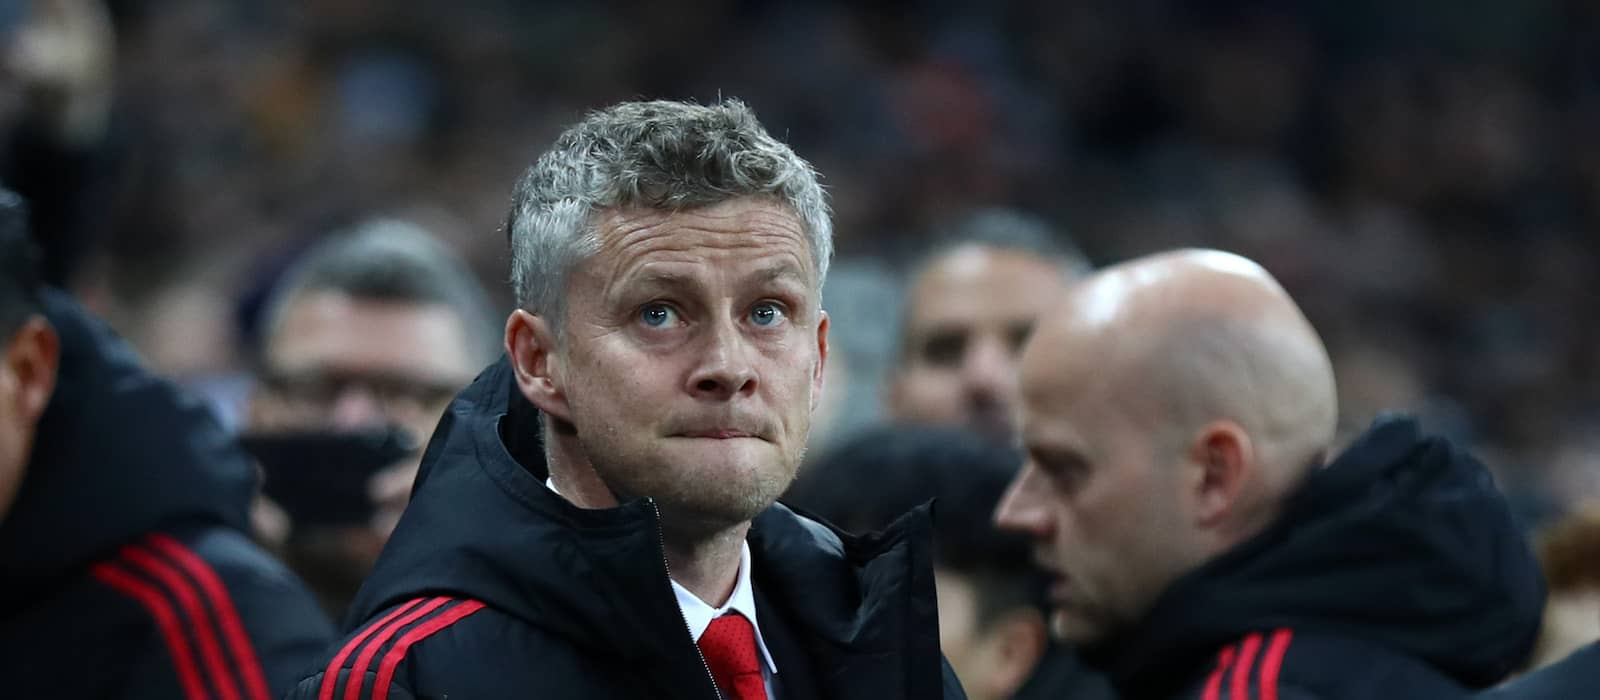 What must Ole Gunnar Solskjaer do to become Manchester United's next permanent manager?